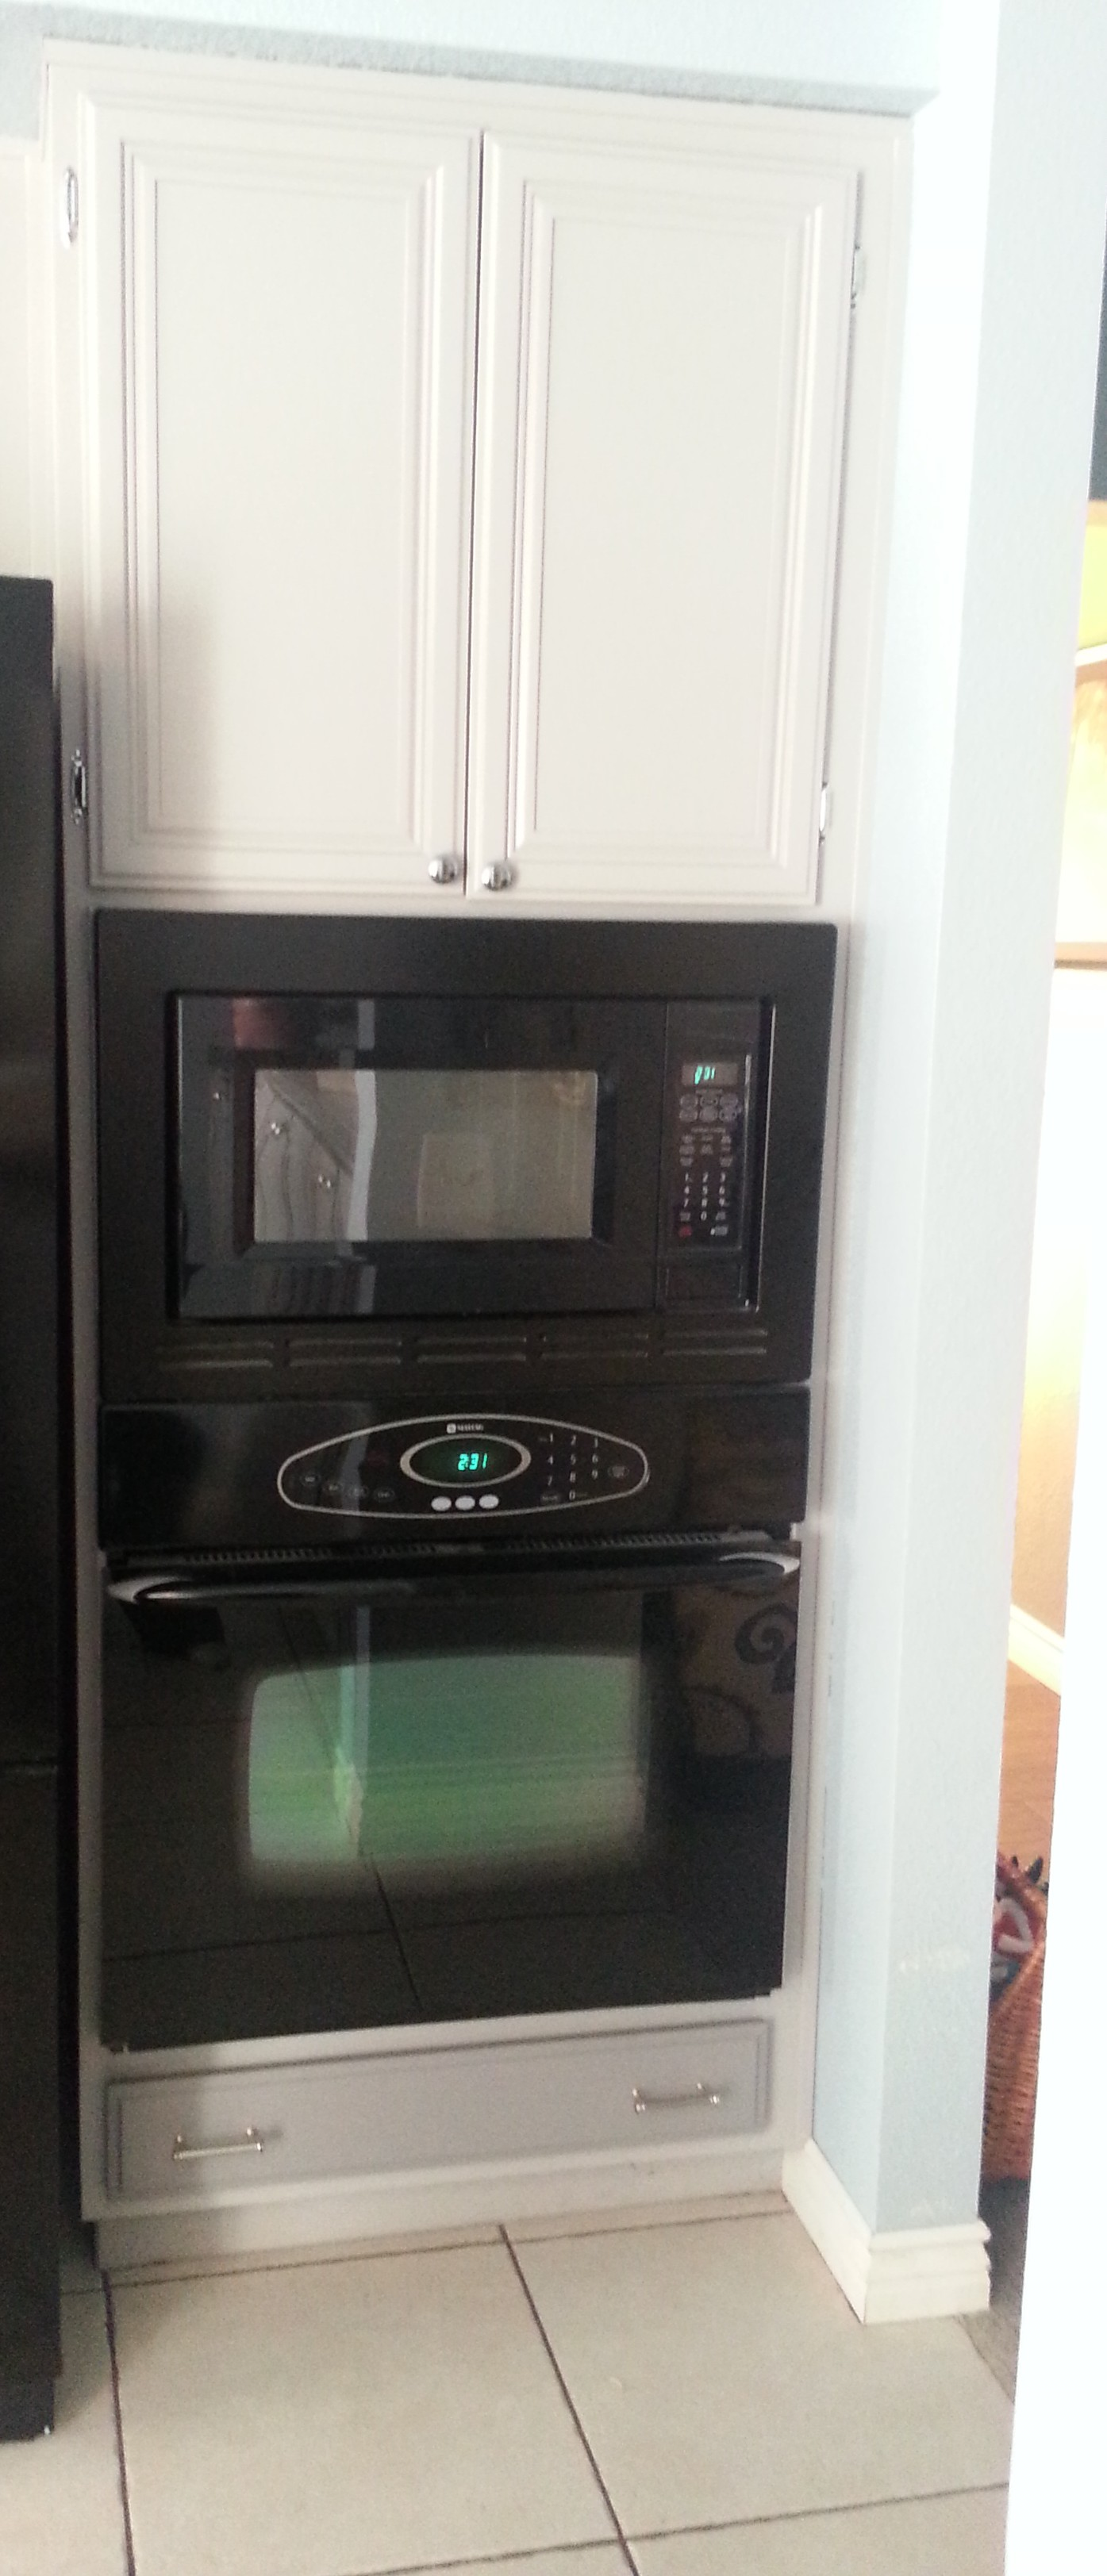 Oven and Microwave Wall